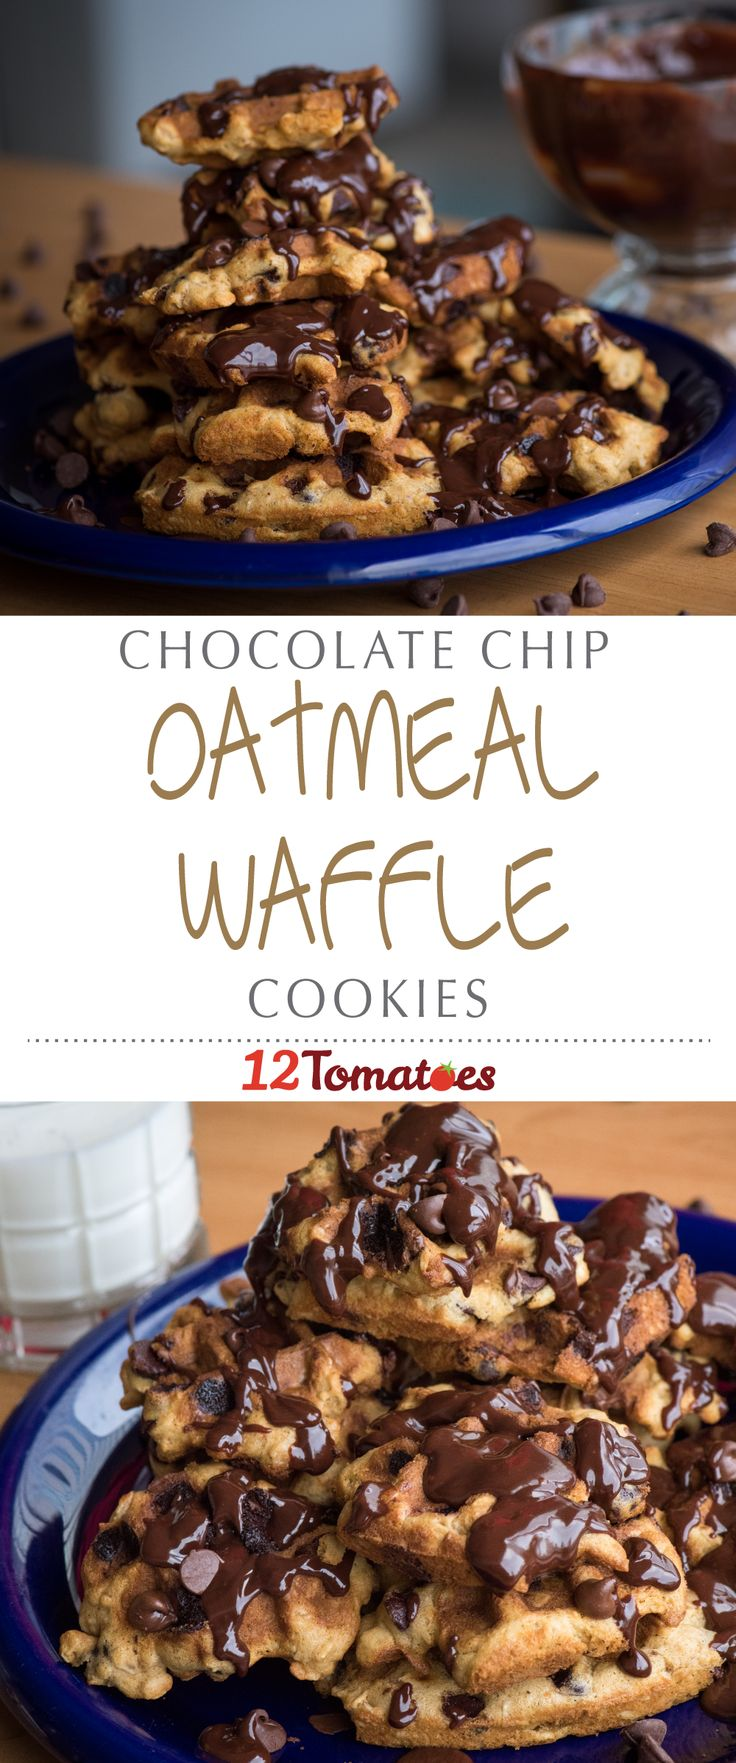 1000+ ideas about Chocolate Waffles on Pinterest ...